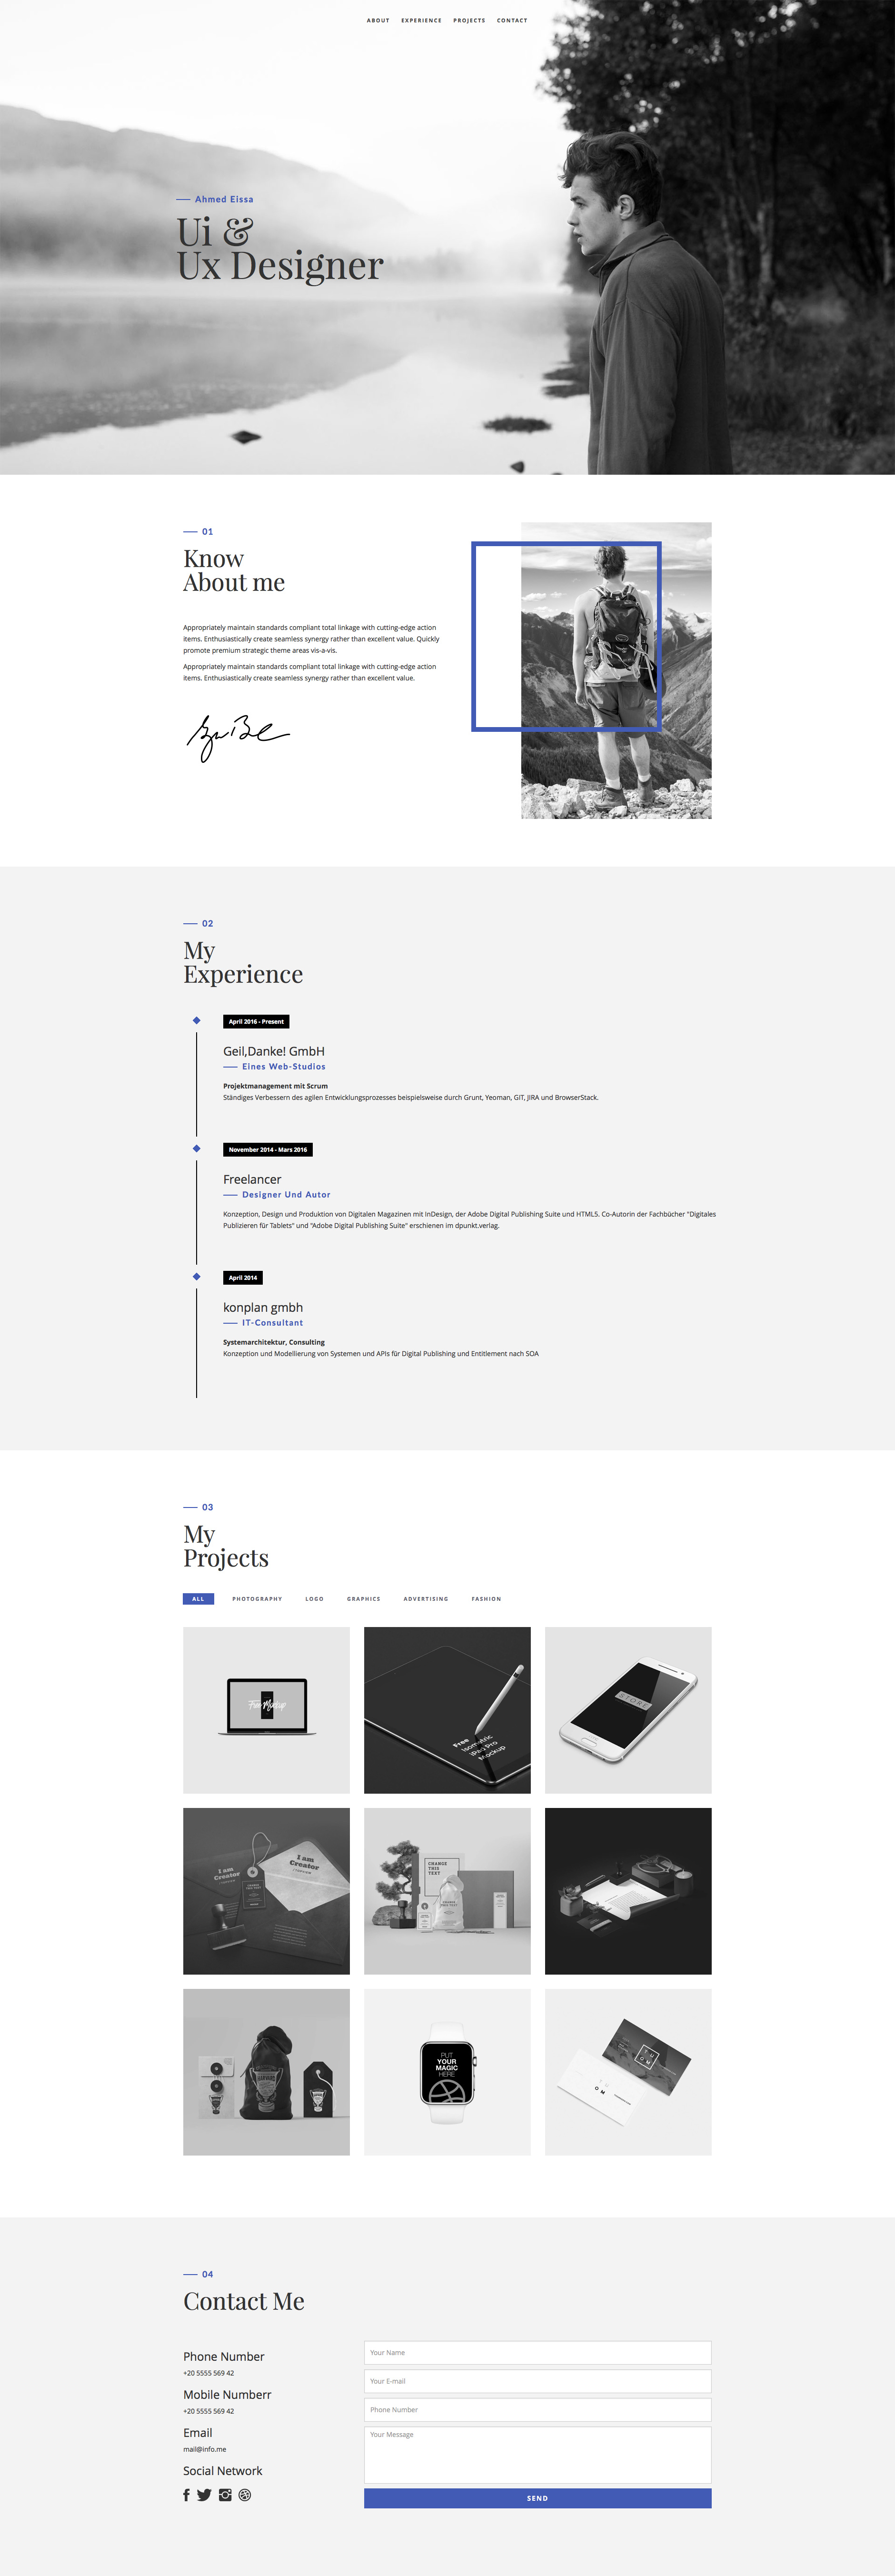 Resume is a free responsive HTML5 template using Bootstrap framework. Ideal choice for portfolio and resume websites. With Resume template you can easily showcase your work and services.